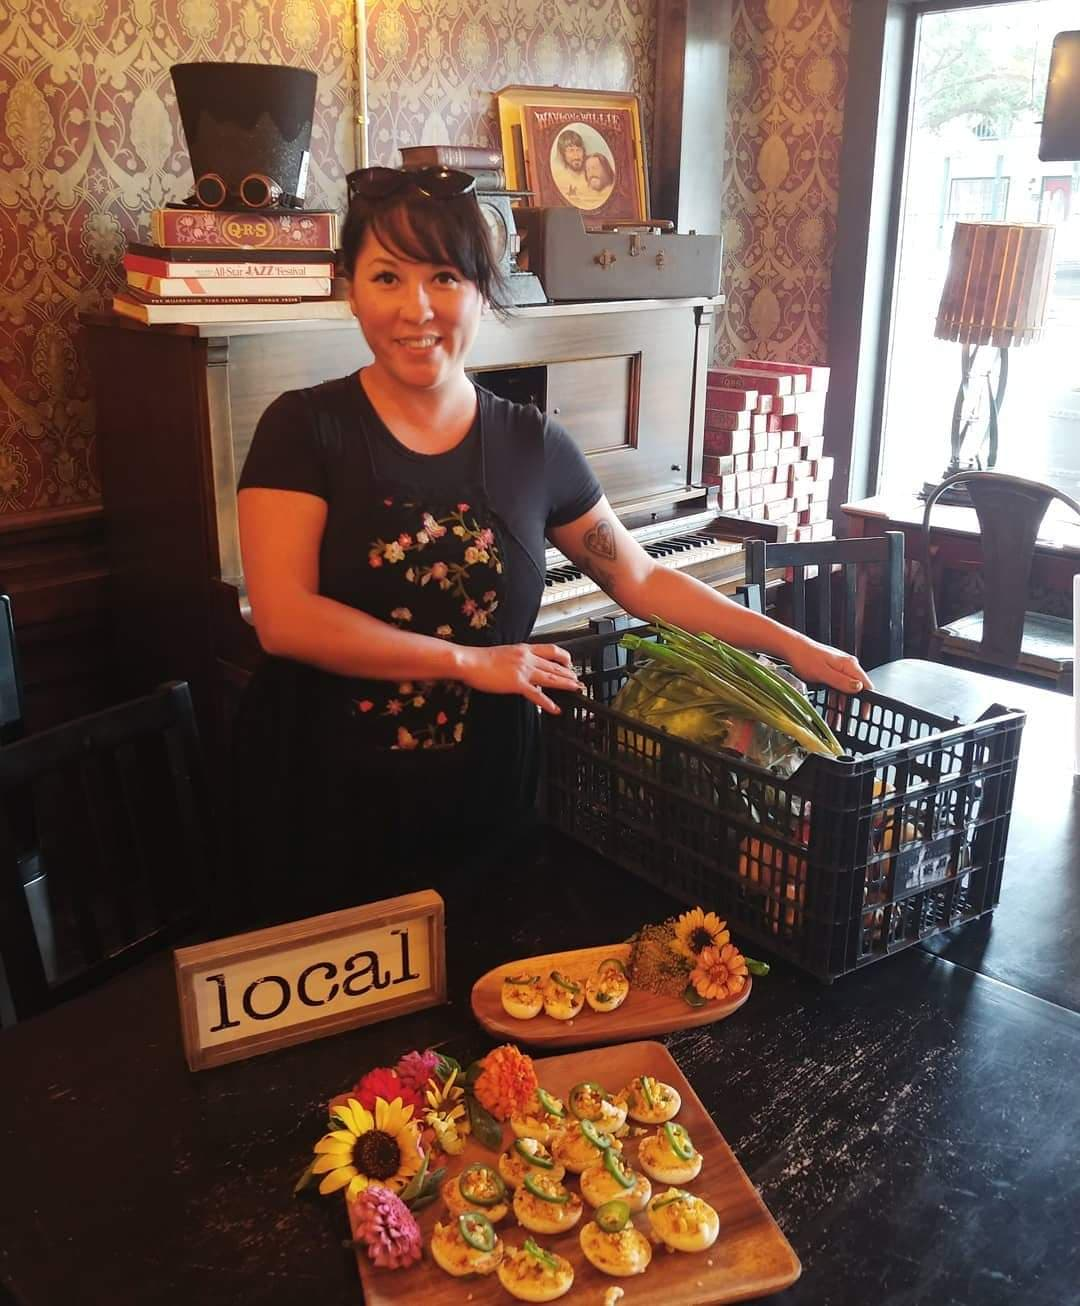 This is an image of Elyssa, Tomball Volunteer. She is in front of a piano, with deviled eggs on a platter and a farm box full of vegetables.